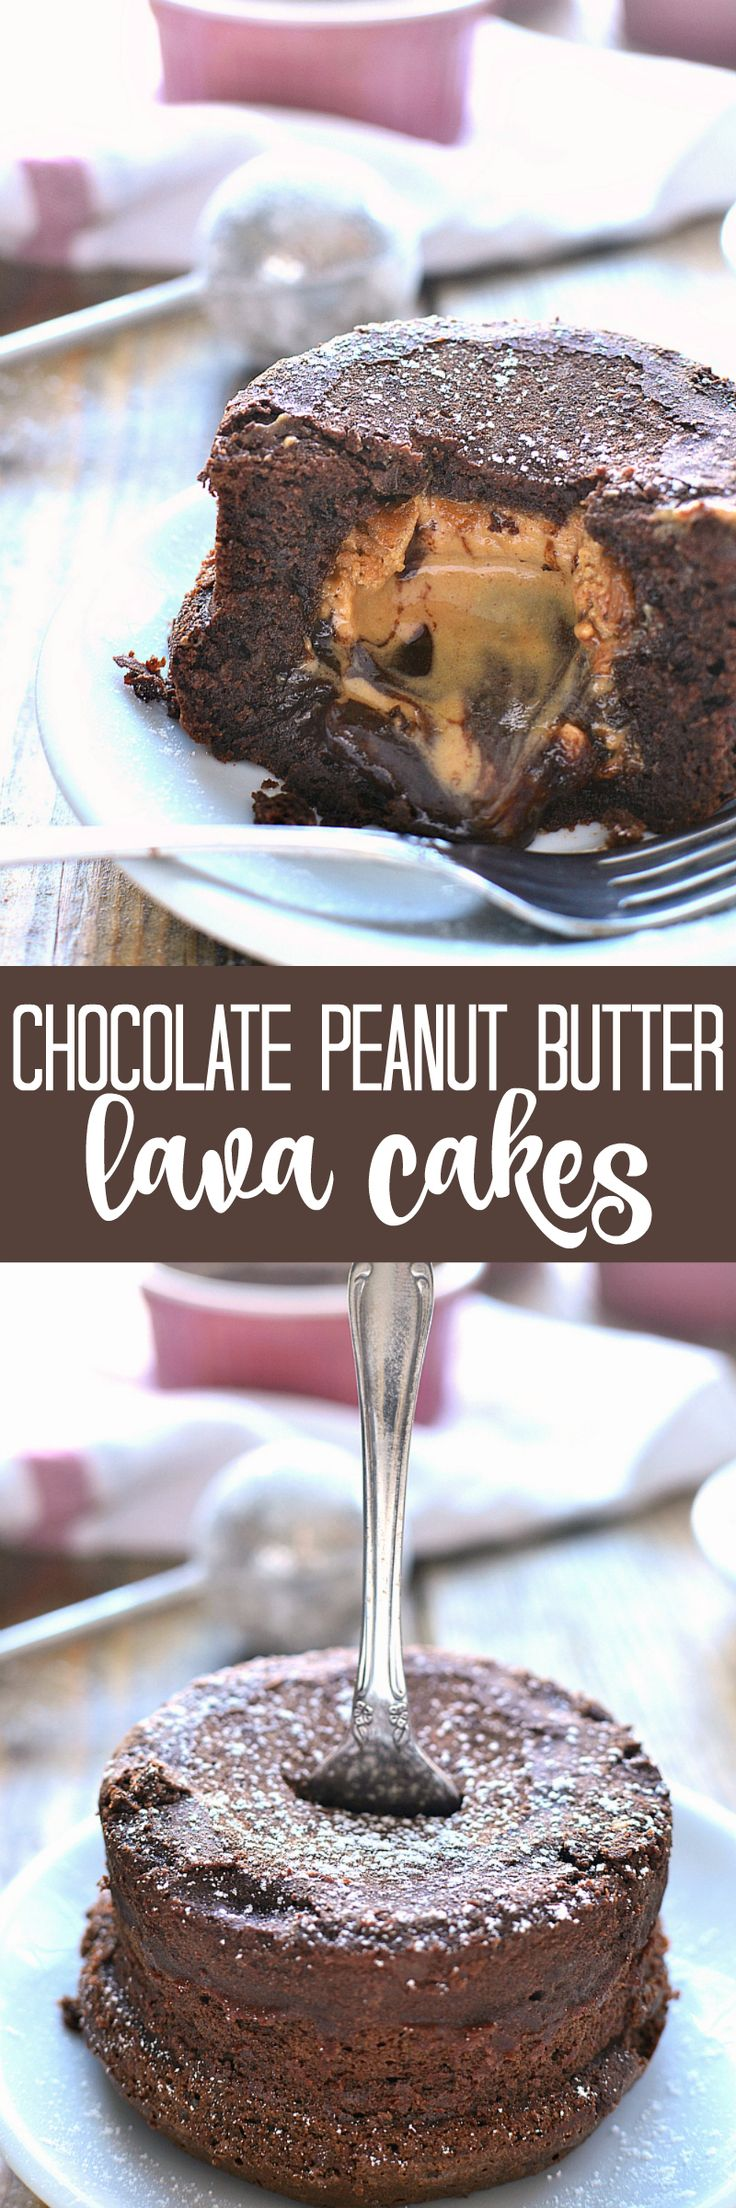 Chocolate Peanut Butter Lava Cakes combine two classic flavors in one deliciously ooey gooey dessert. Perfect for Valentine's Day or any special occasion!: